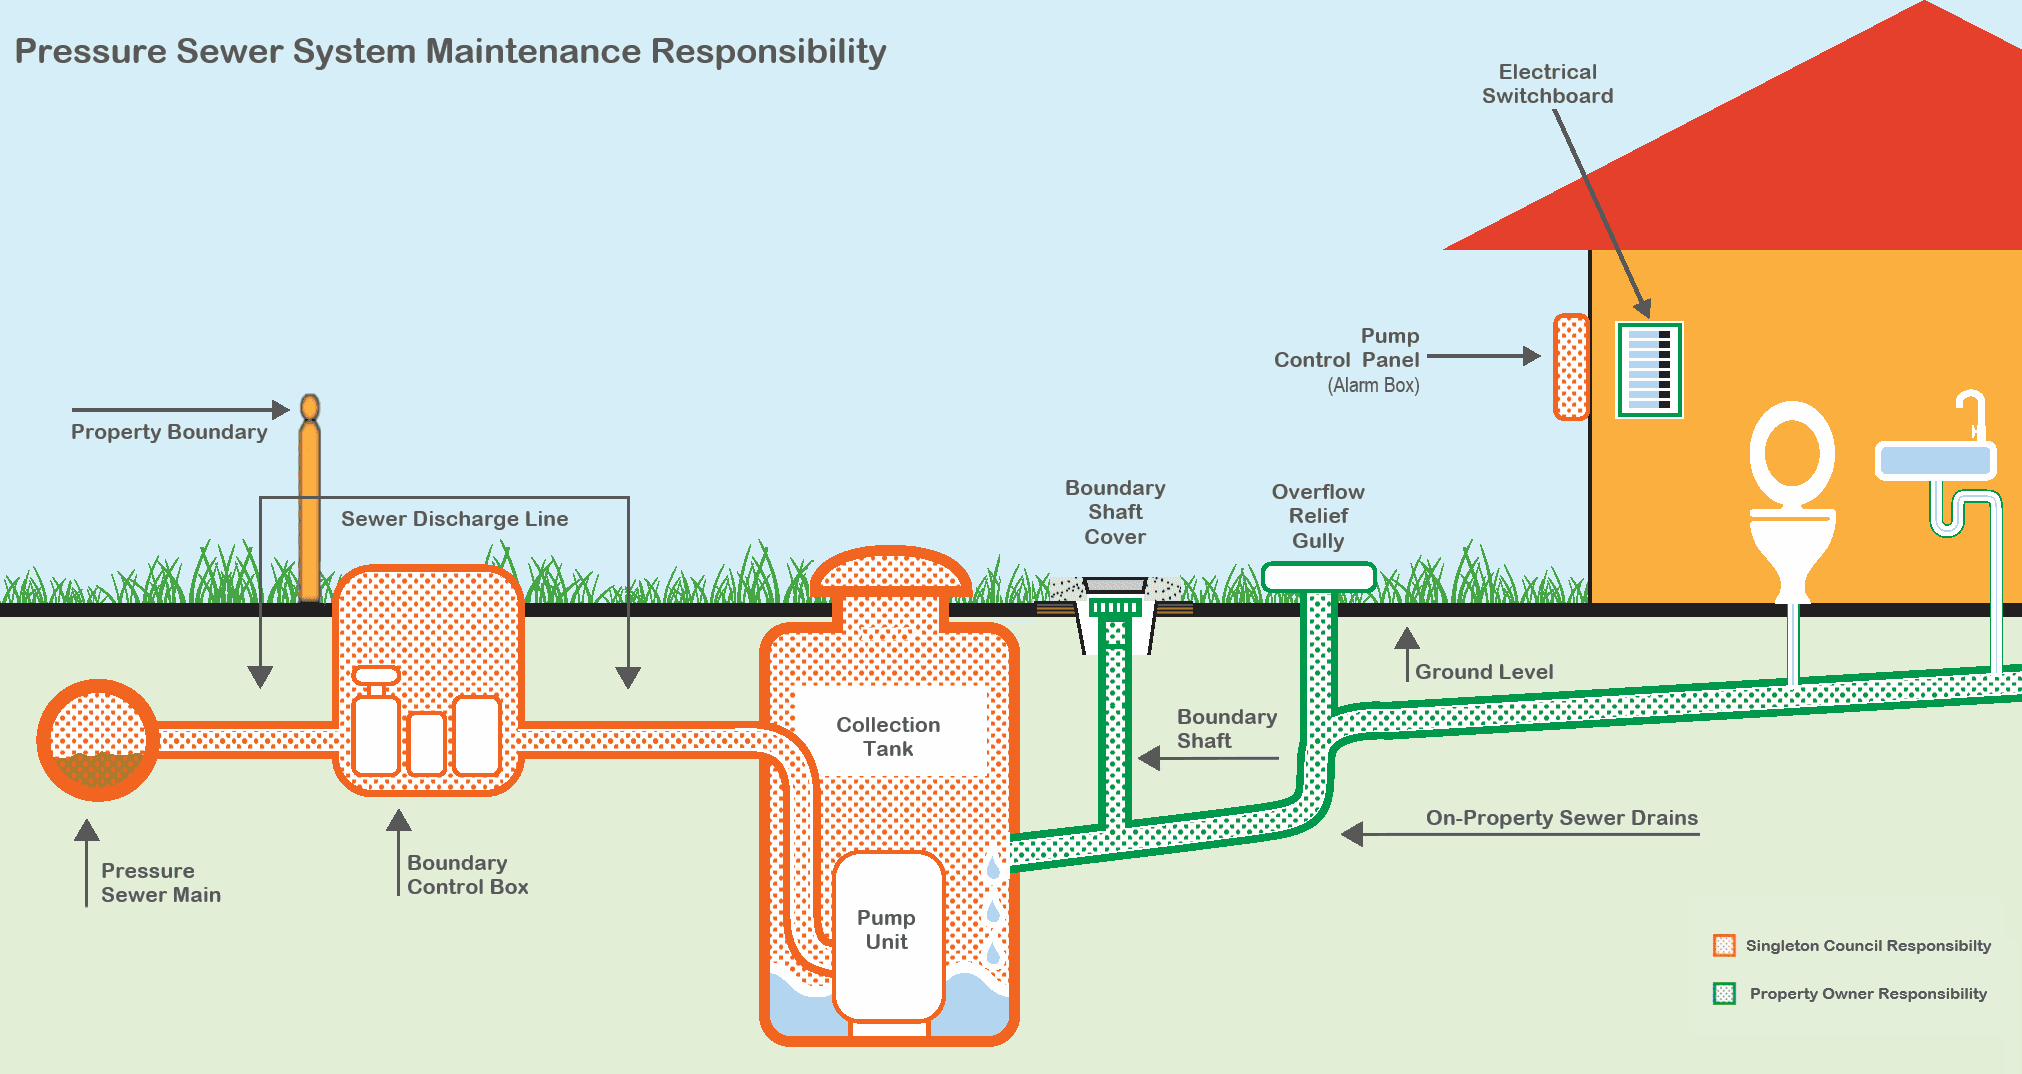 819 - Pressure Sewer Arrangement